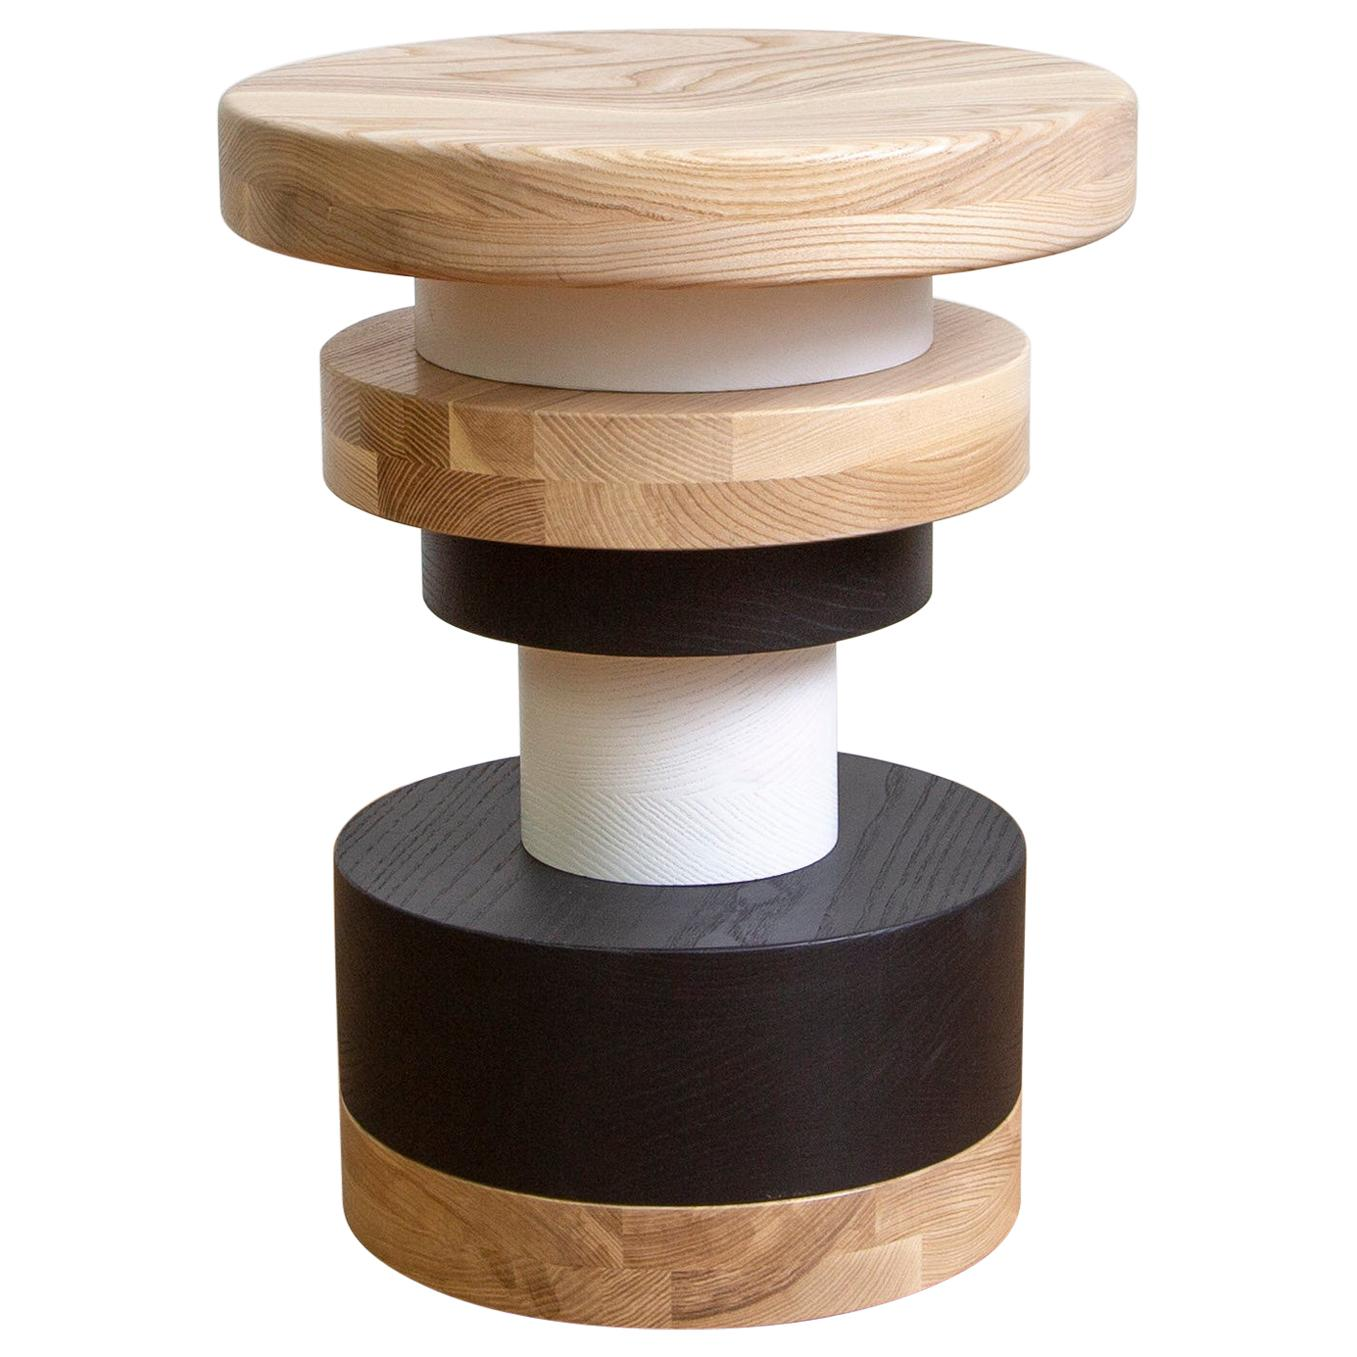 Customizable Low Sass Stool from Souda, Dining Chair, Seating, Shape A